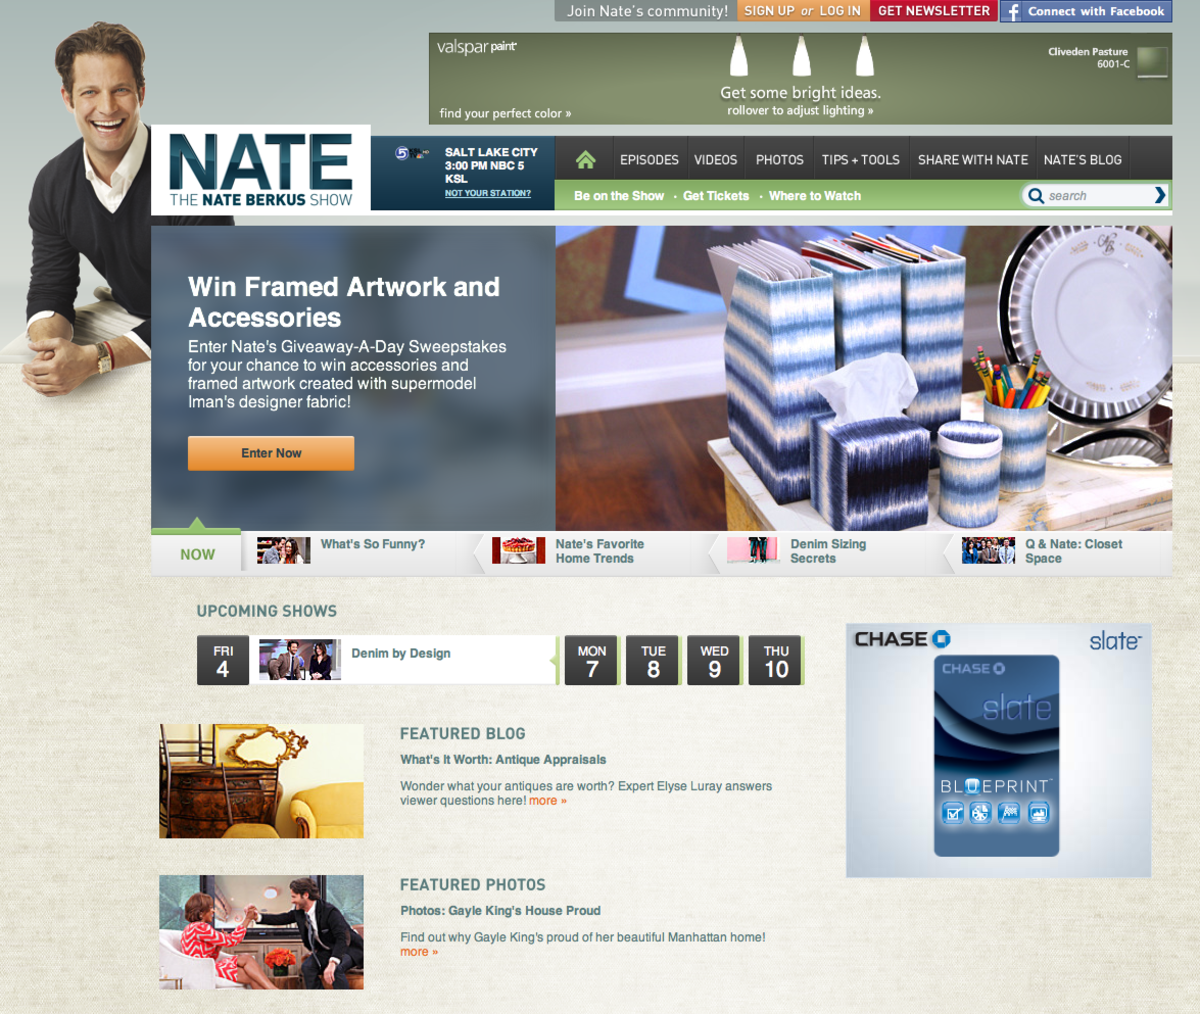 The Nate Show